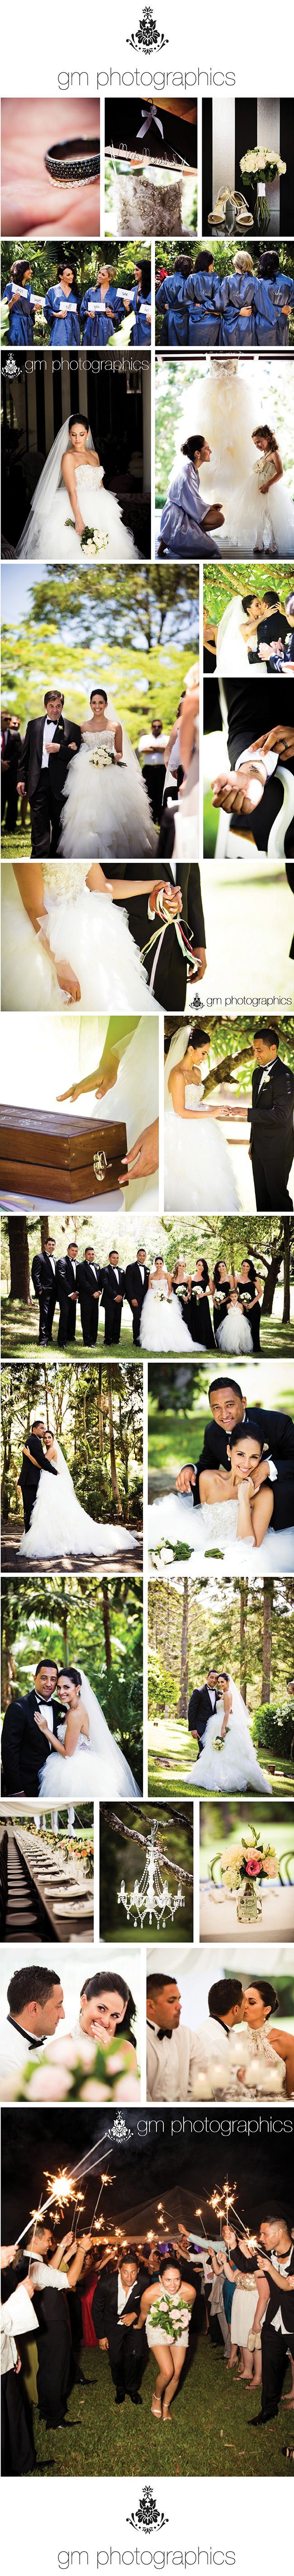 Zoe & Benji, wedding conducted on 5 Jan 2013 by Chiquita Mitchell.  Photography by GM Photographics.